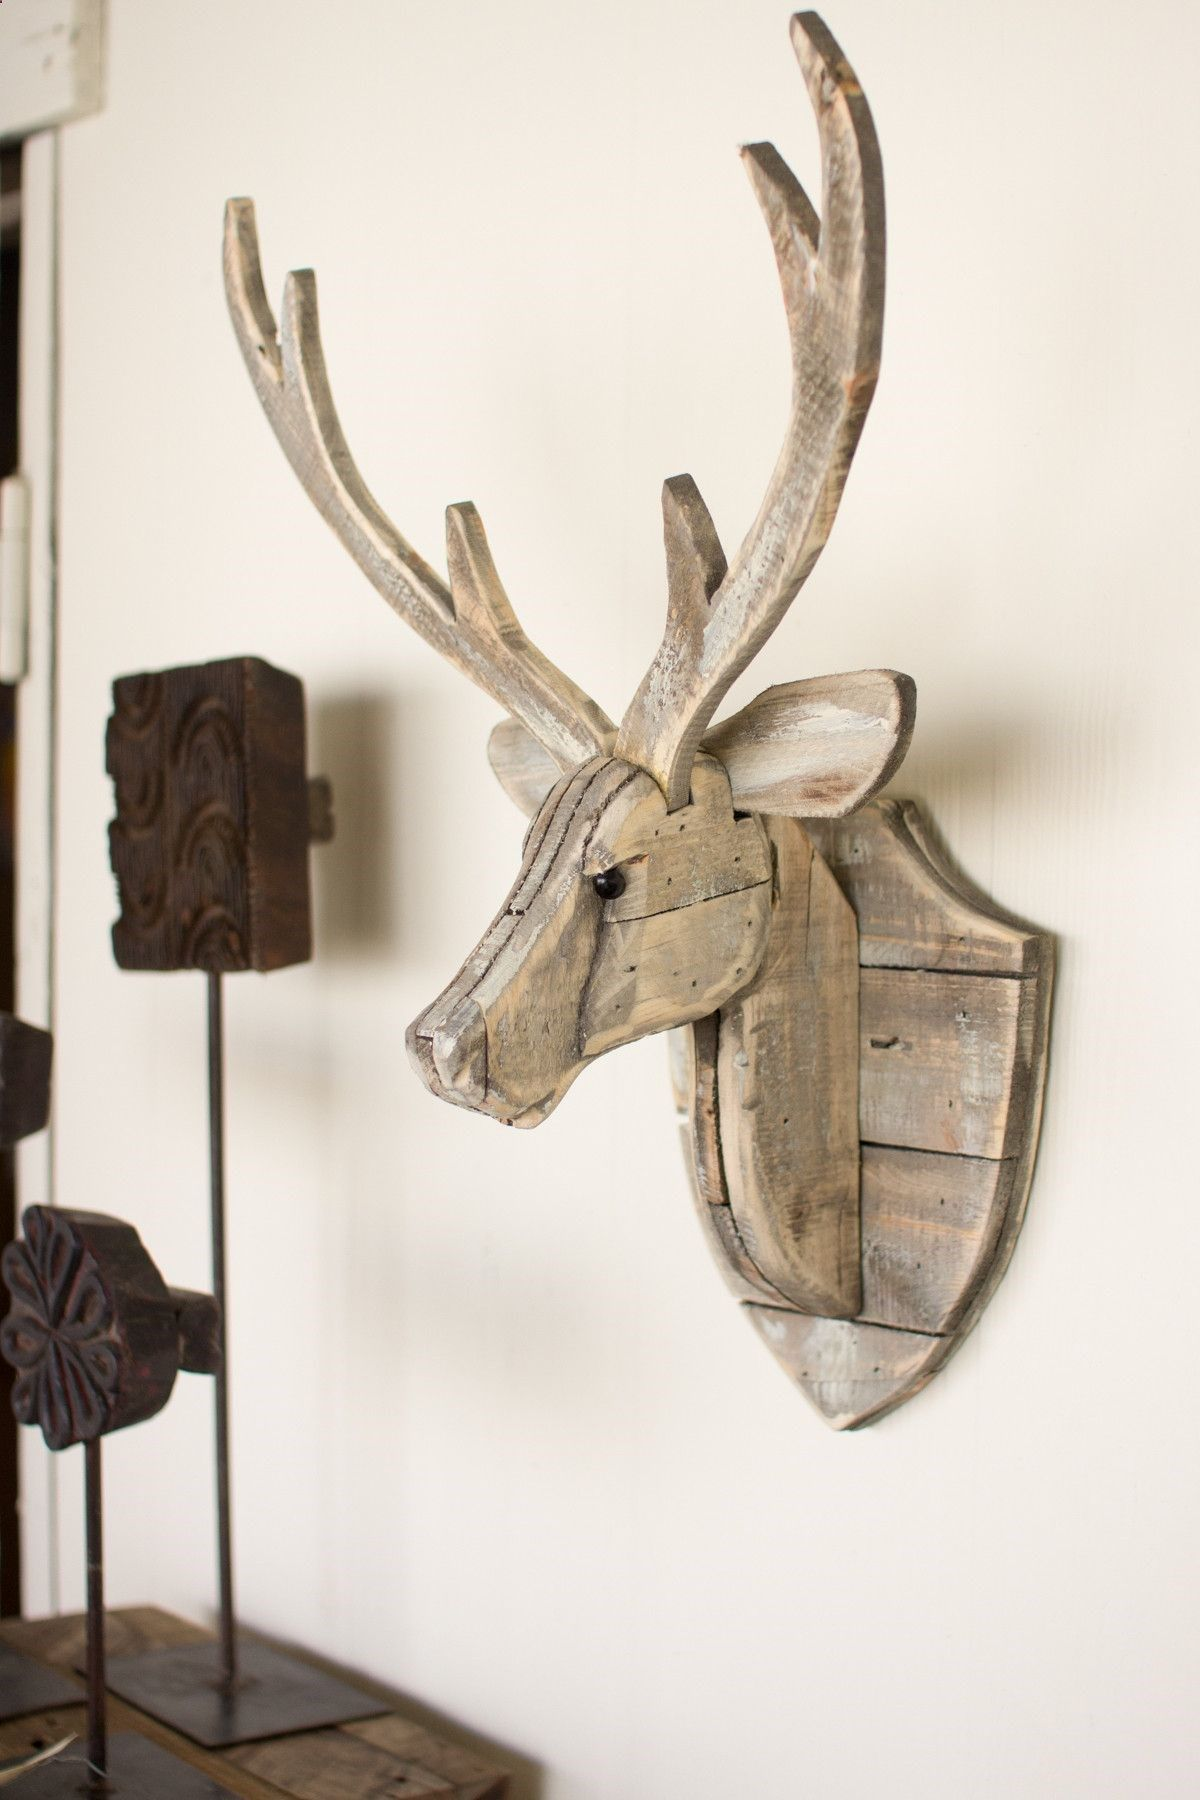 projects ideas dear head. Ted s Woodworking Plans  Kalalou Recycled Wooden Deer Head Wall Hanging More Get A Lifetime Of Project Ideas Inspiration Step By Art